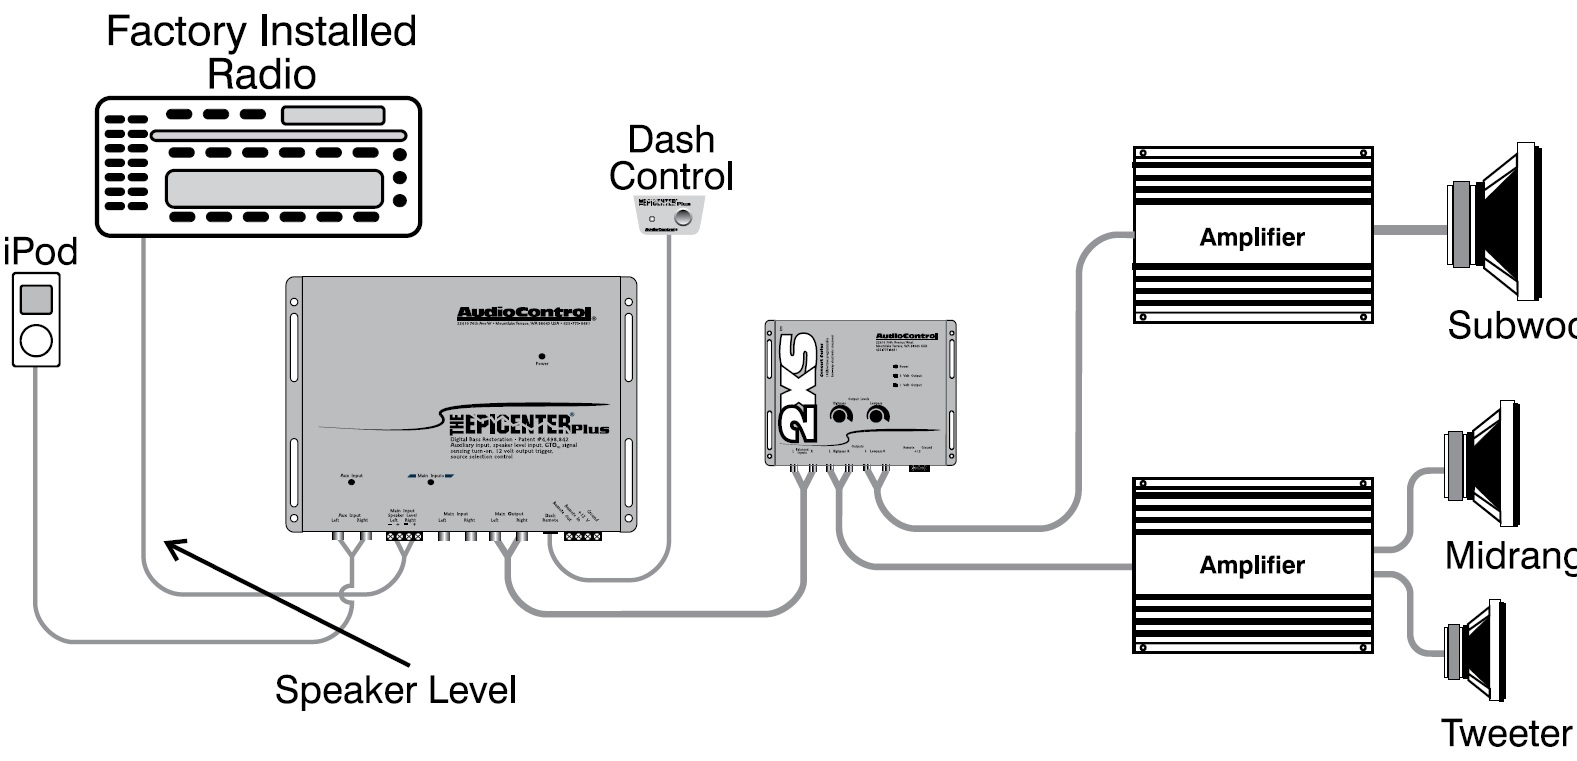 epicenterplus_simpleinstall car application diagrams audiocontrol line loc switch wiring diagram at creativeand.co